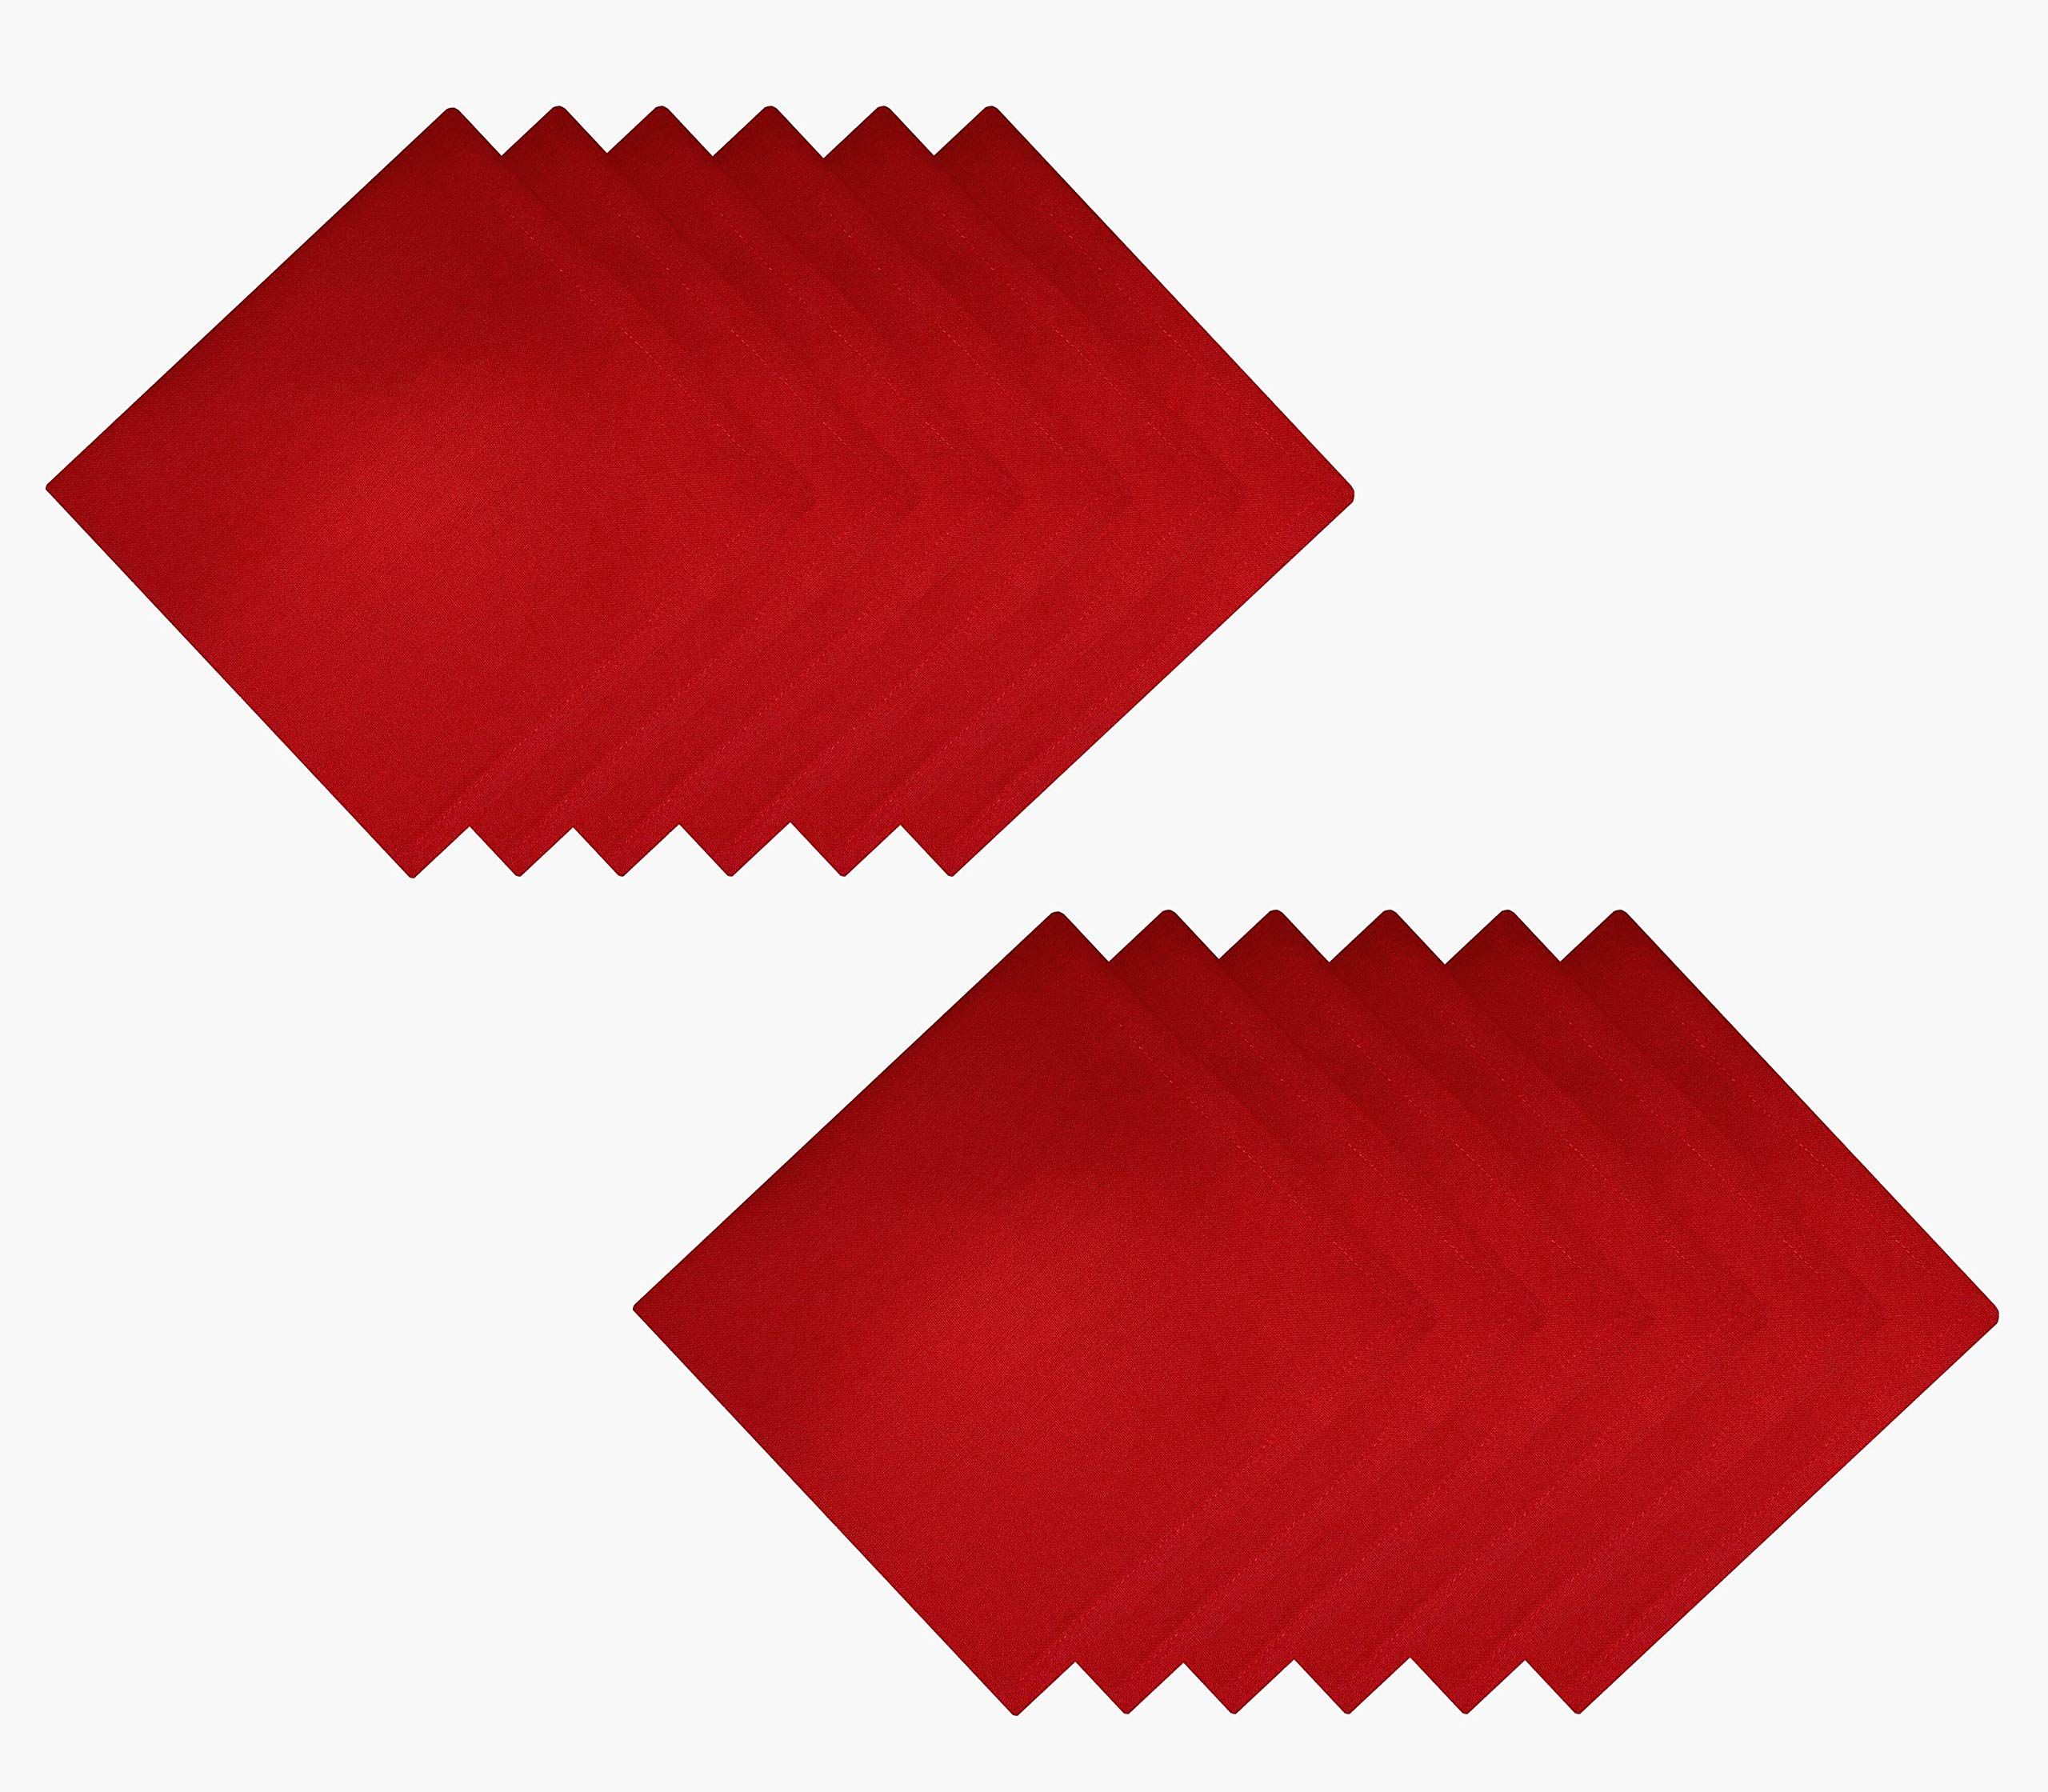 Tiny Break Cloth Napkins 17 x 17 inch -100% Cotton - Soft Comfortable - Ideal Events Regular Home Use - Pavot Red -12 Pack